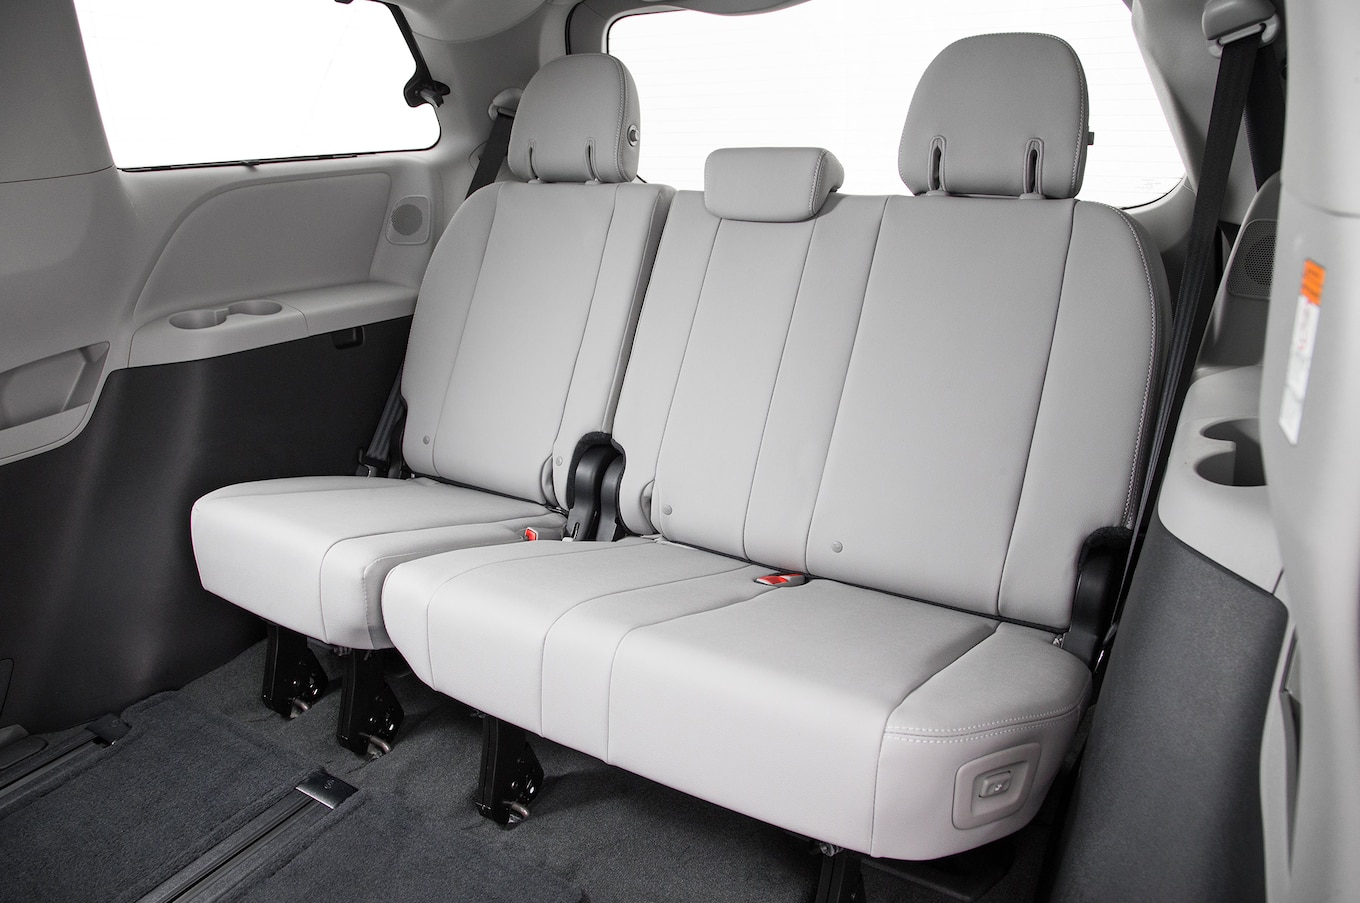 toyota sienna captains chairs removal burlap chair covers 2018 limited interior review motor trend